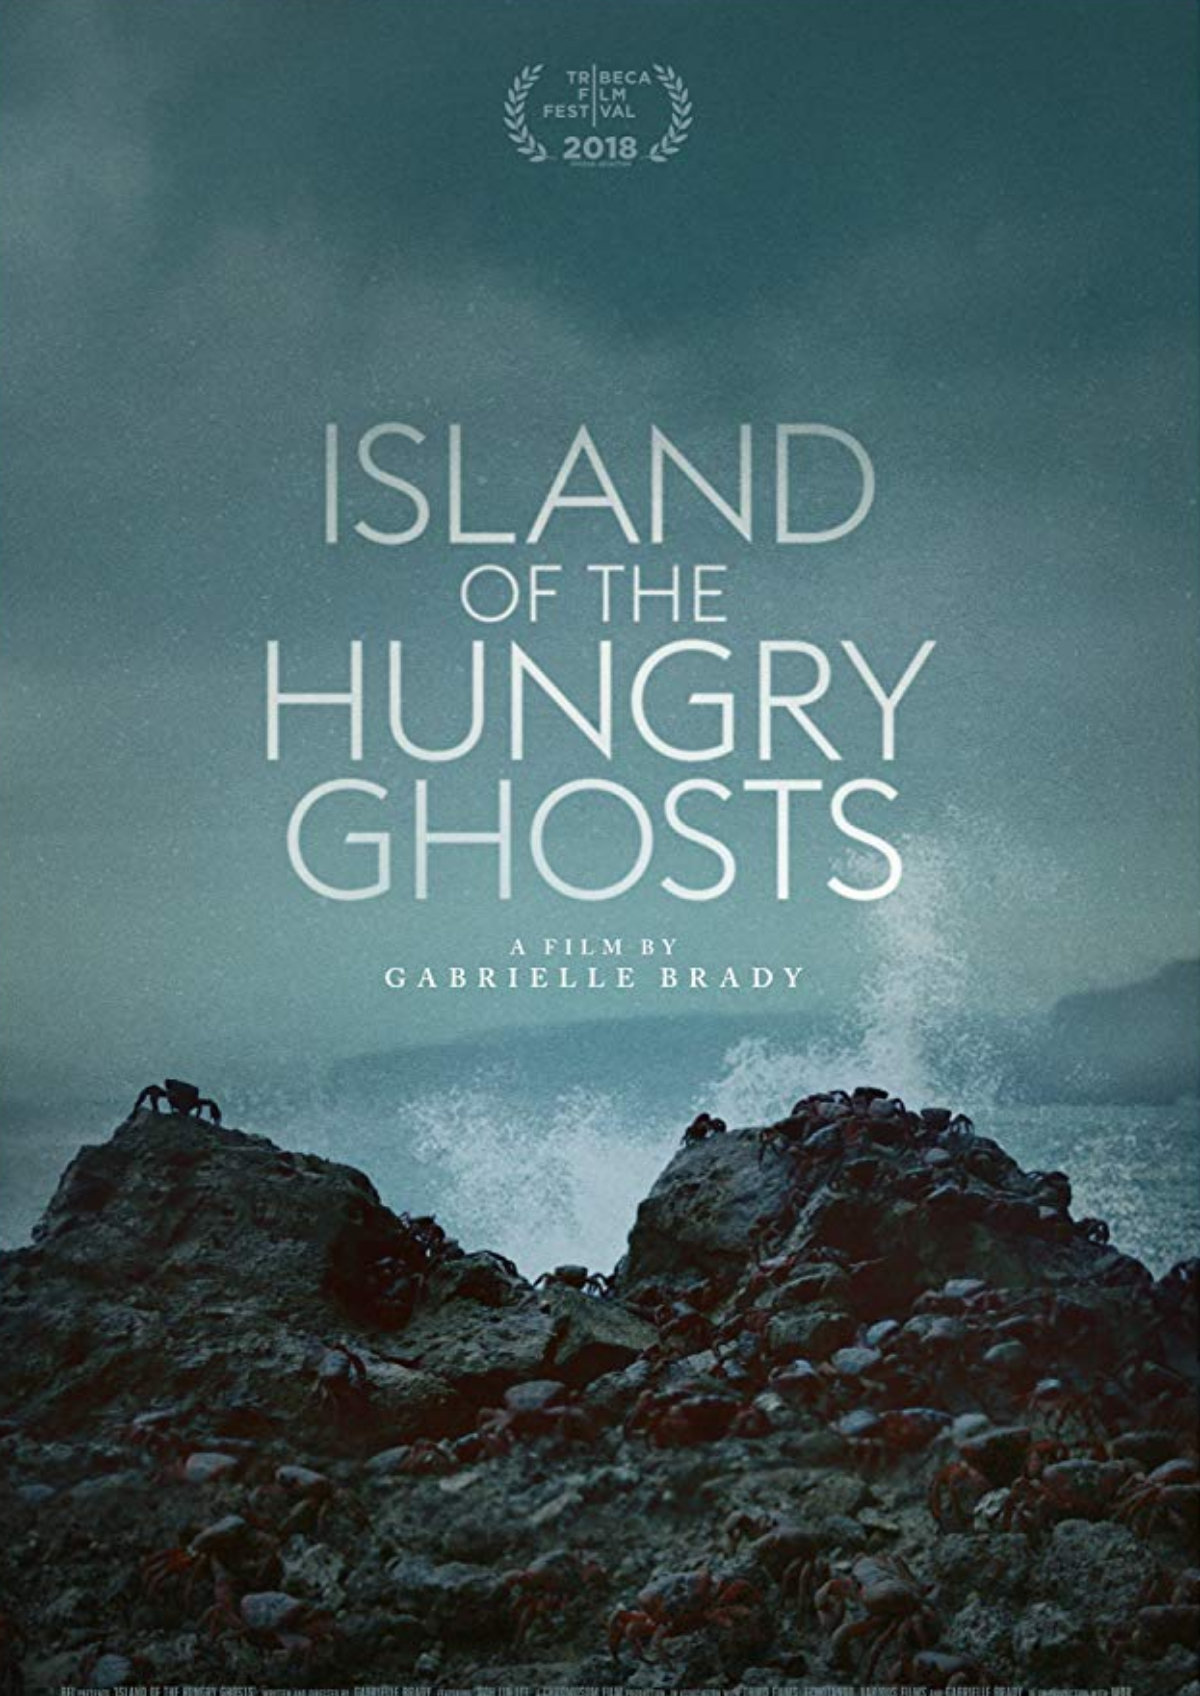 'Island Of The Hungry Ghosts' movie poster